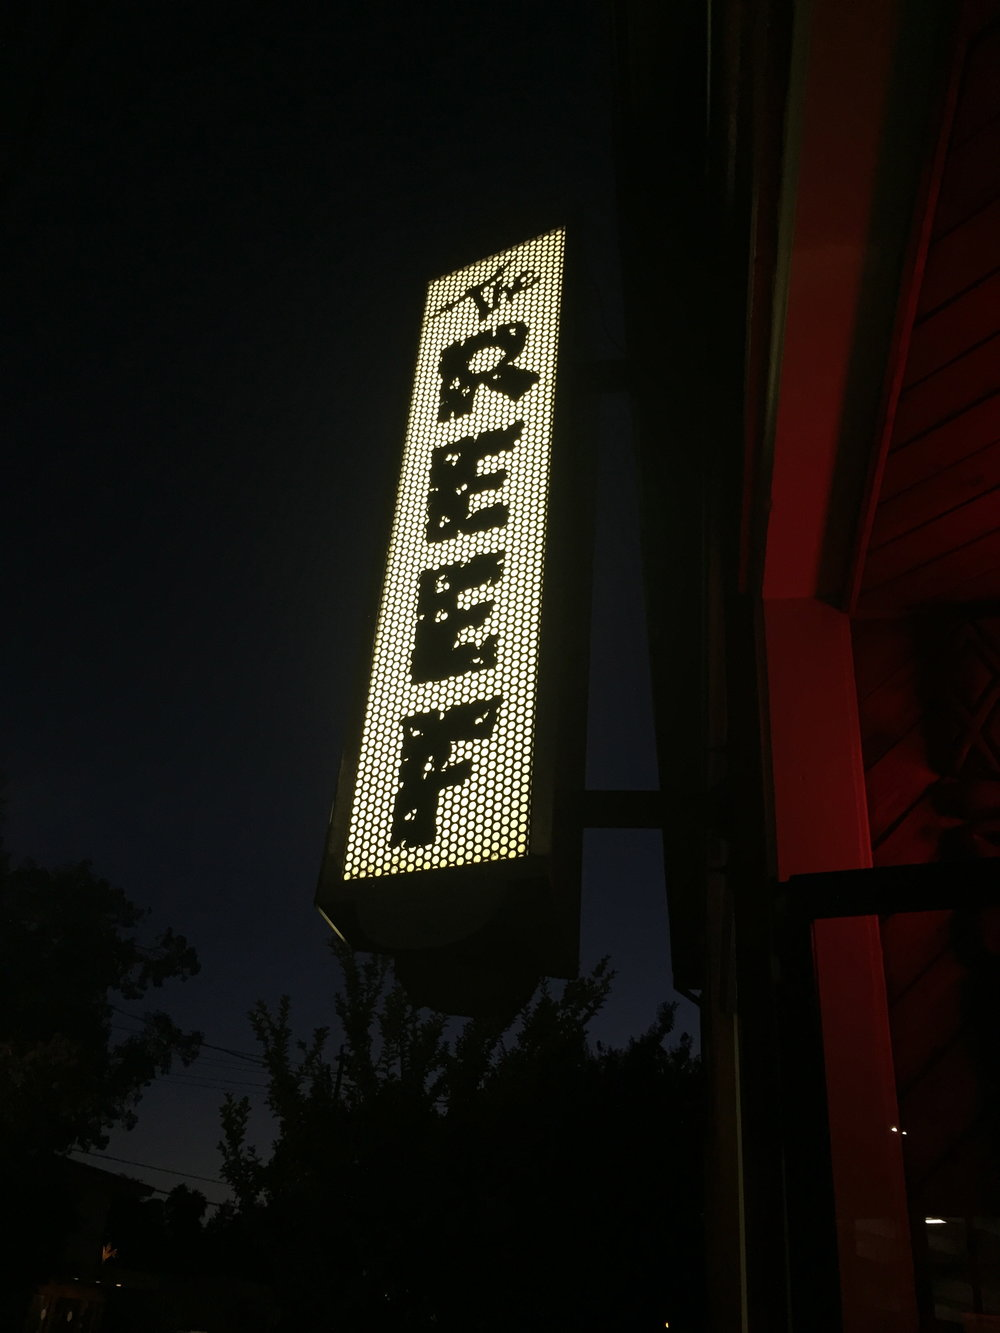 The reef, Hawaiian restaurant and bar,